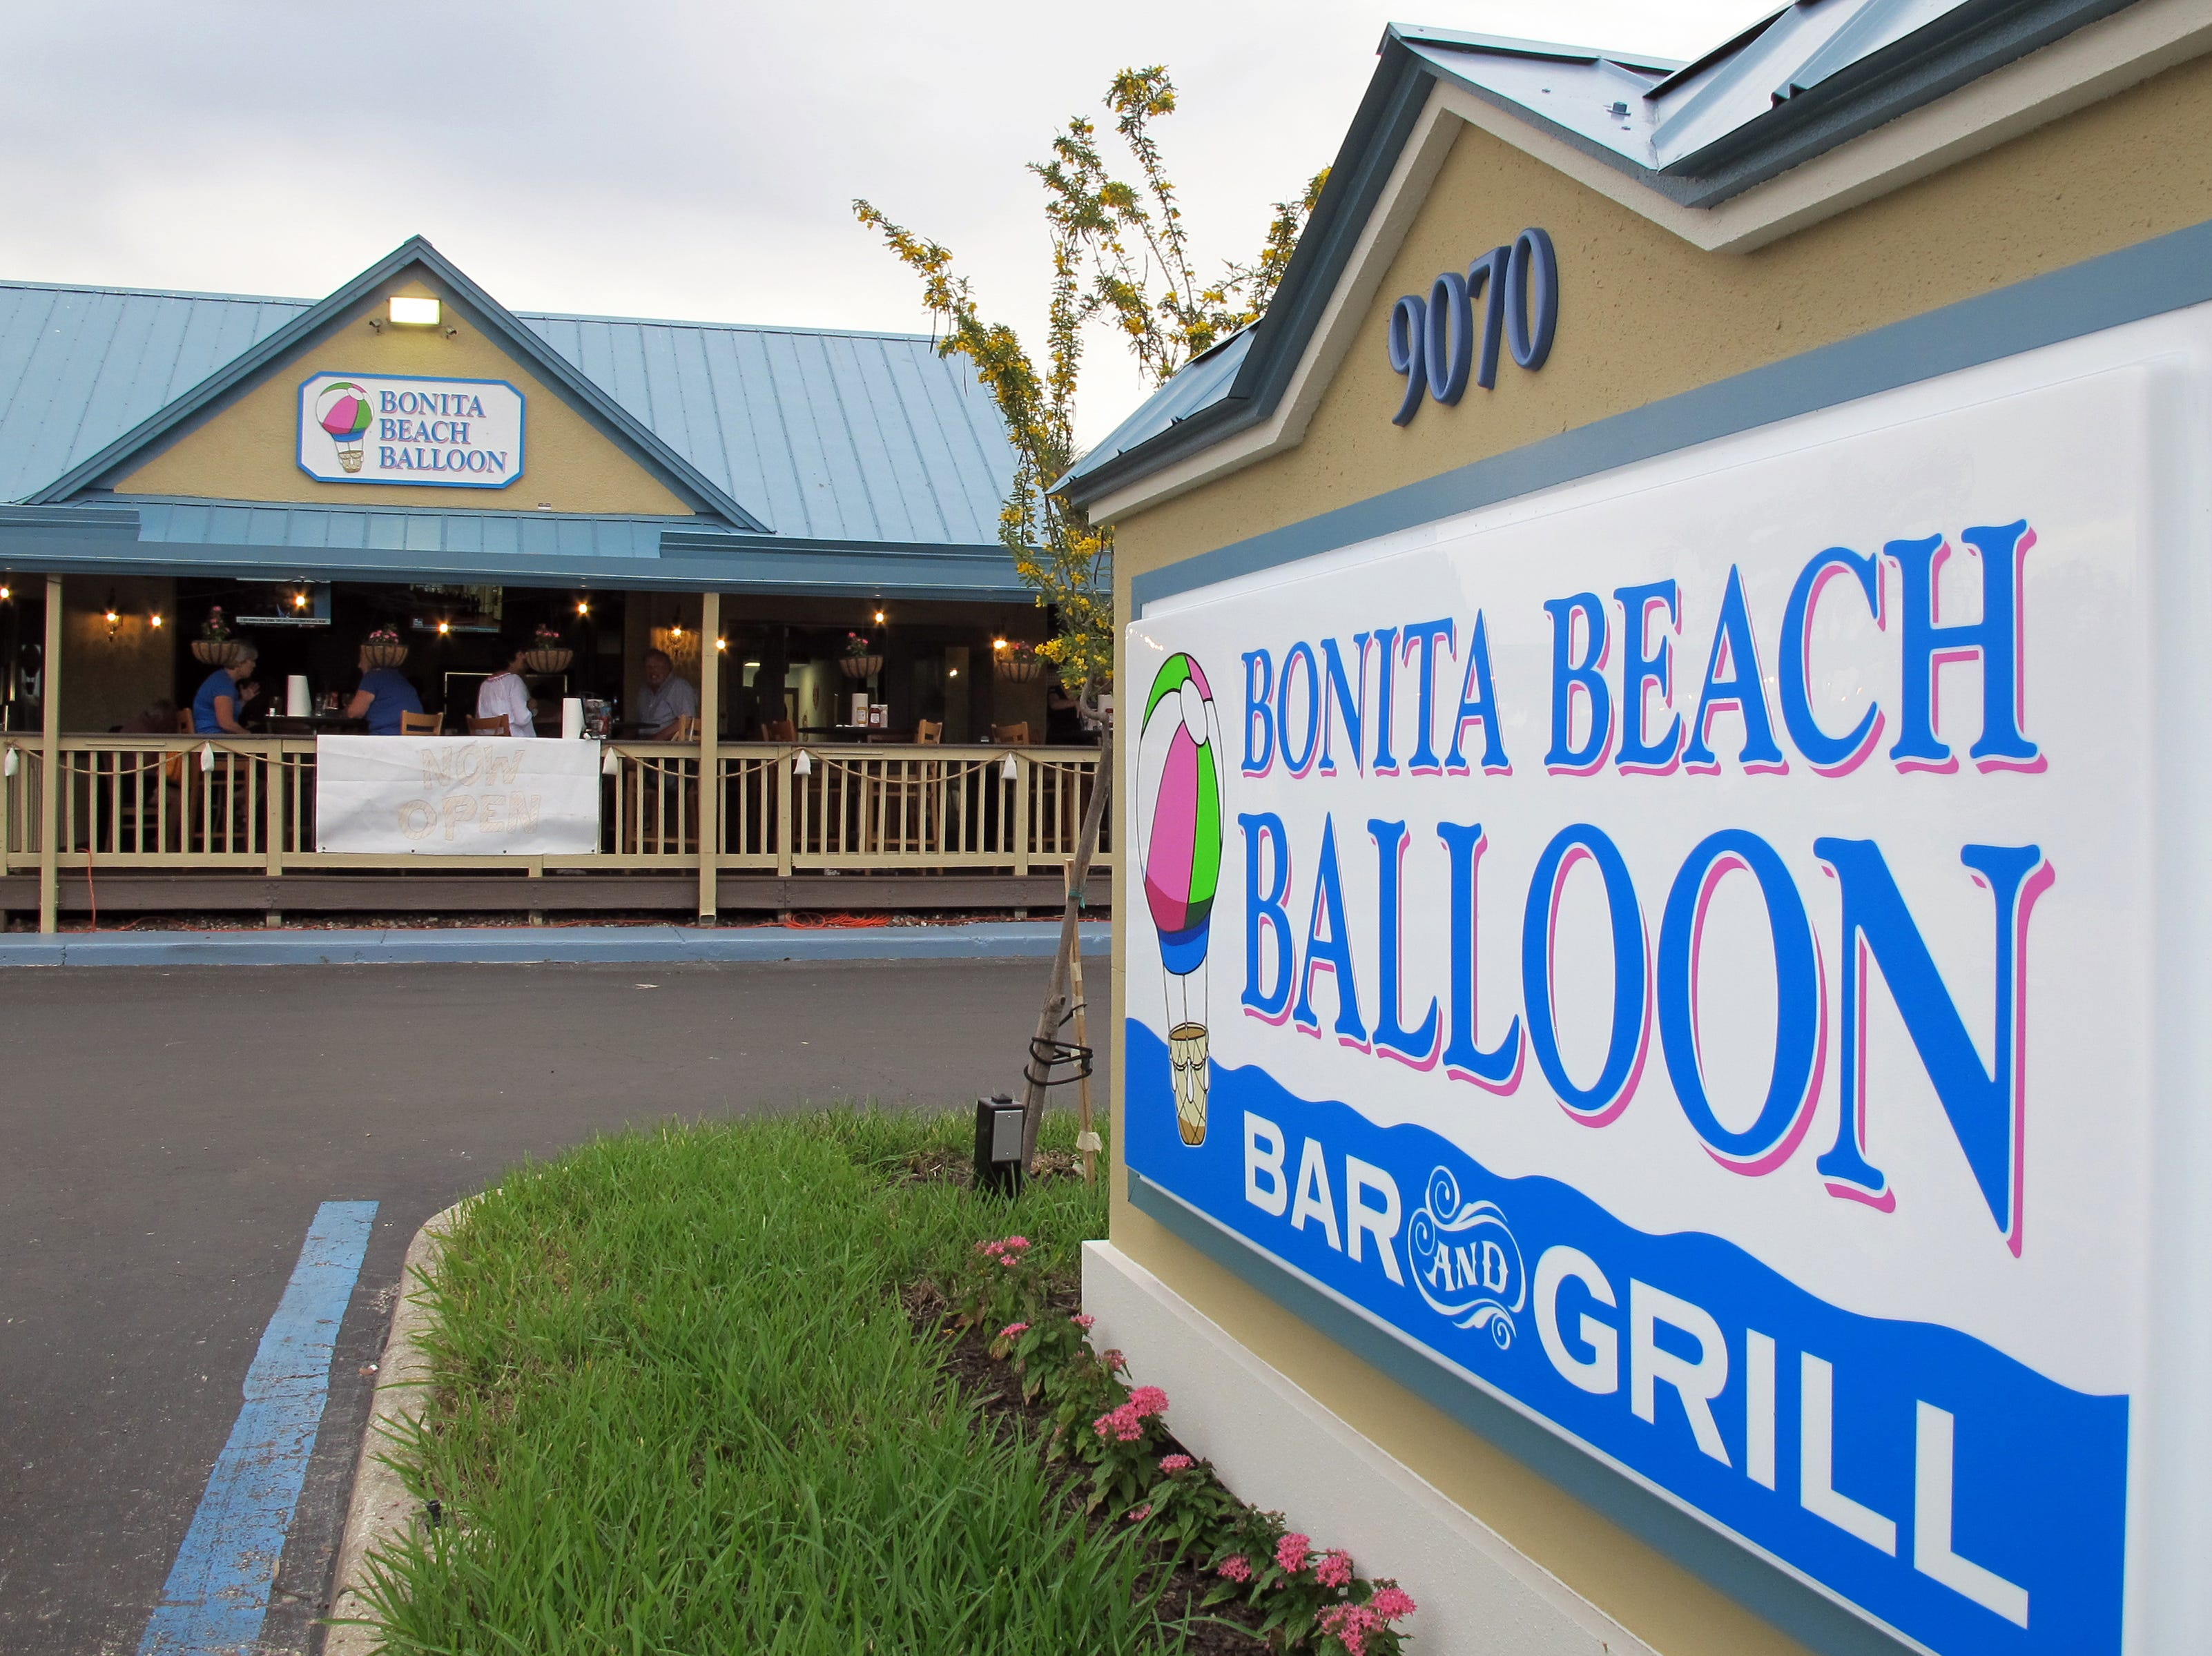 Bonita Beach Balloon Bar & Grill opened in November 2018 on Bonita Beach Road in Bonita Springs.